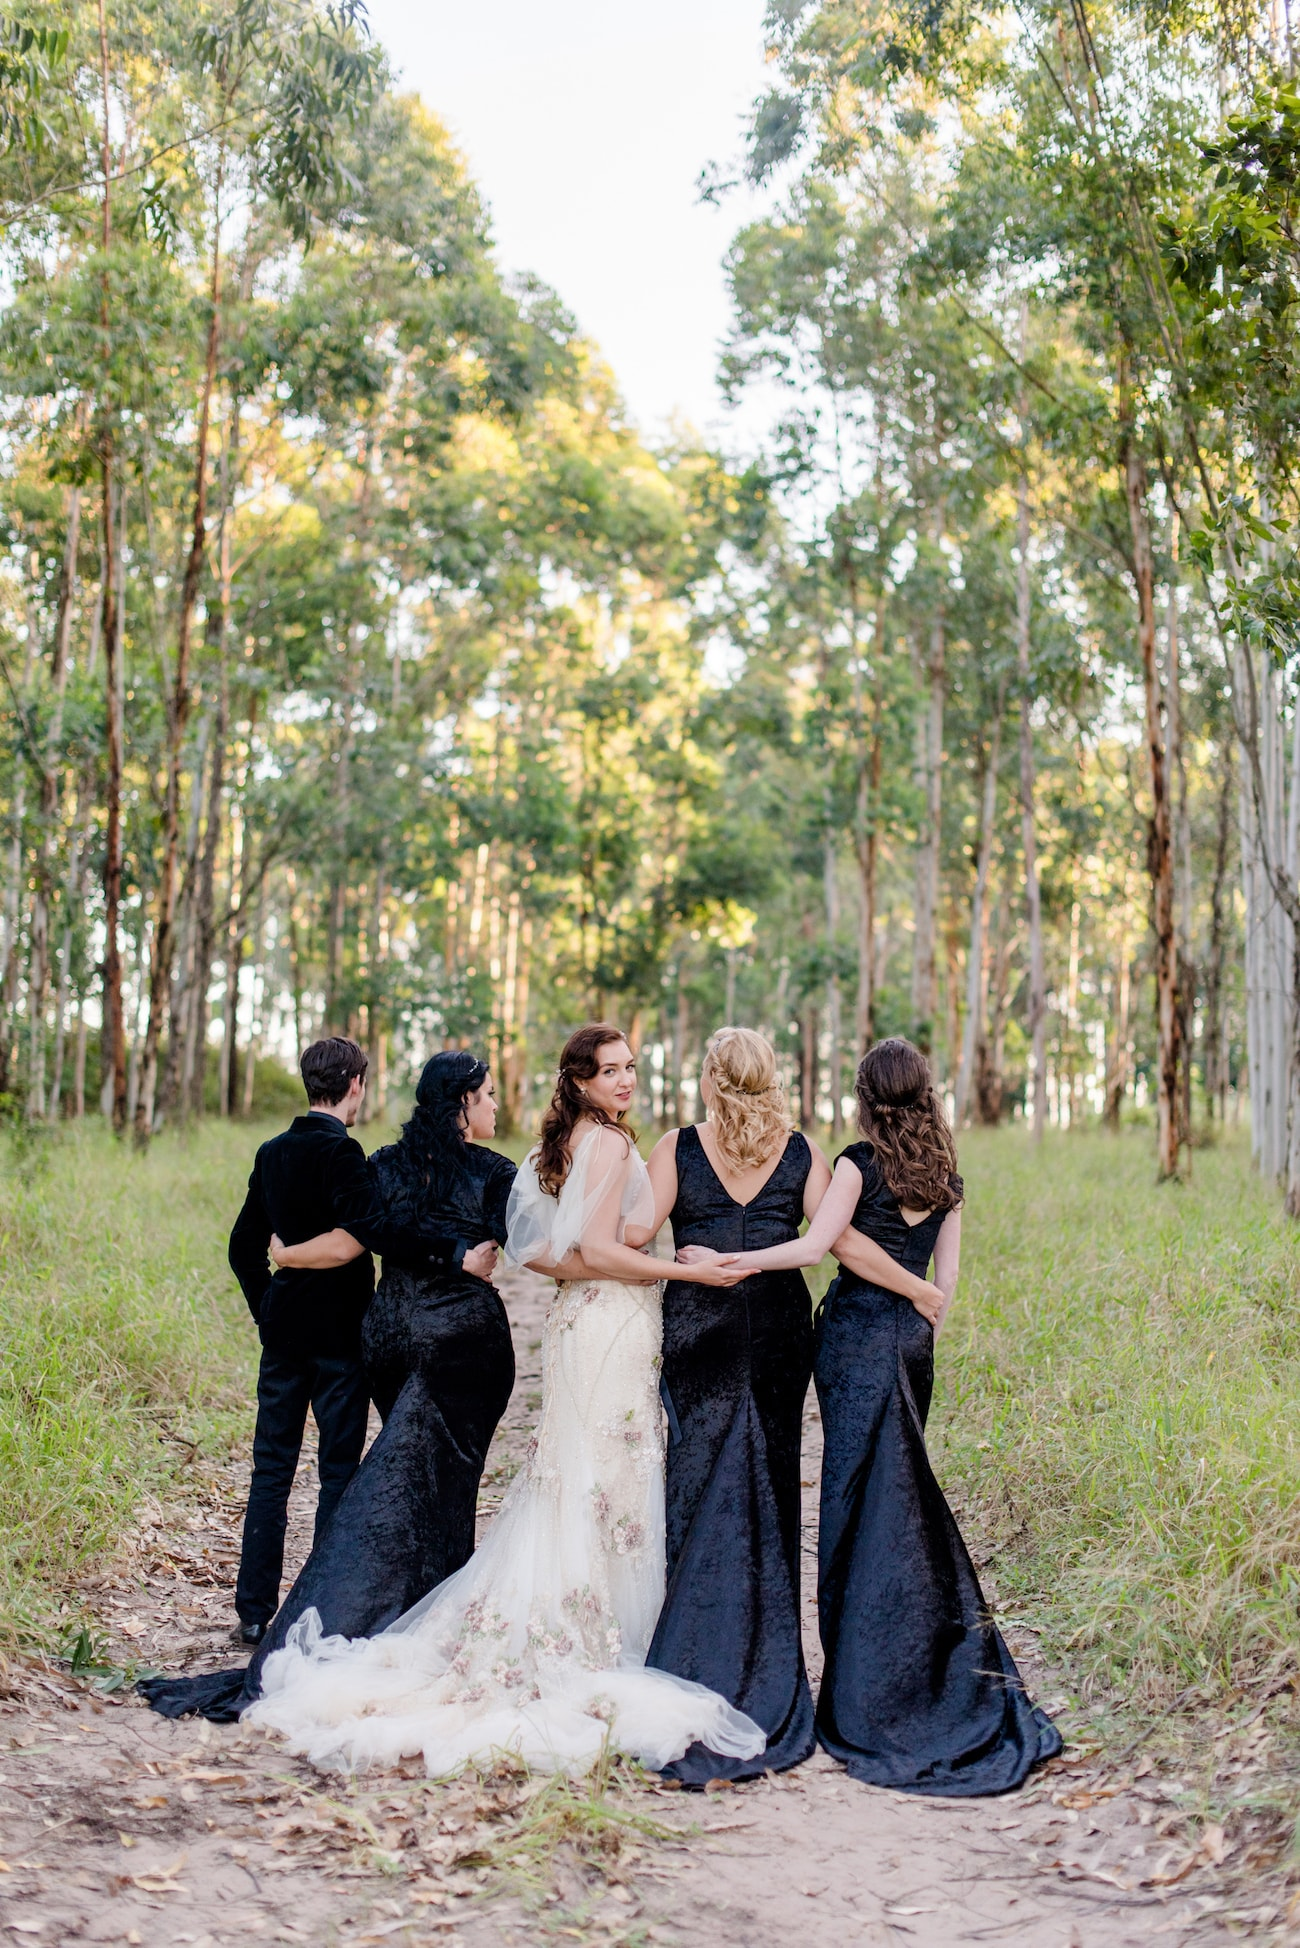 Velvet Bridesmaid Dress Inspiration | SouthBound Bride